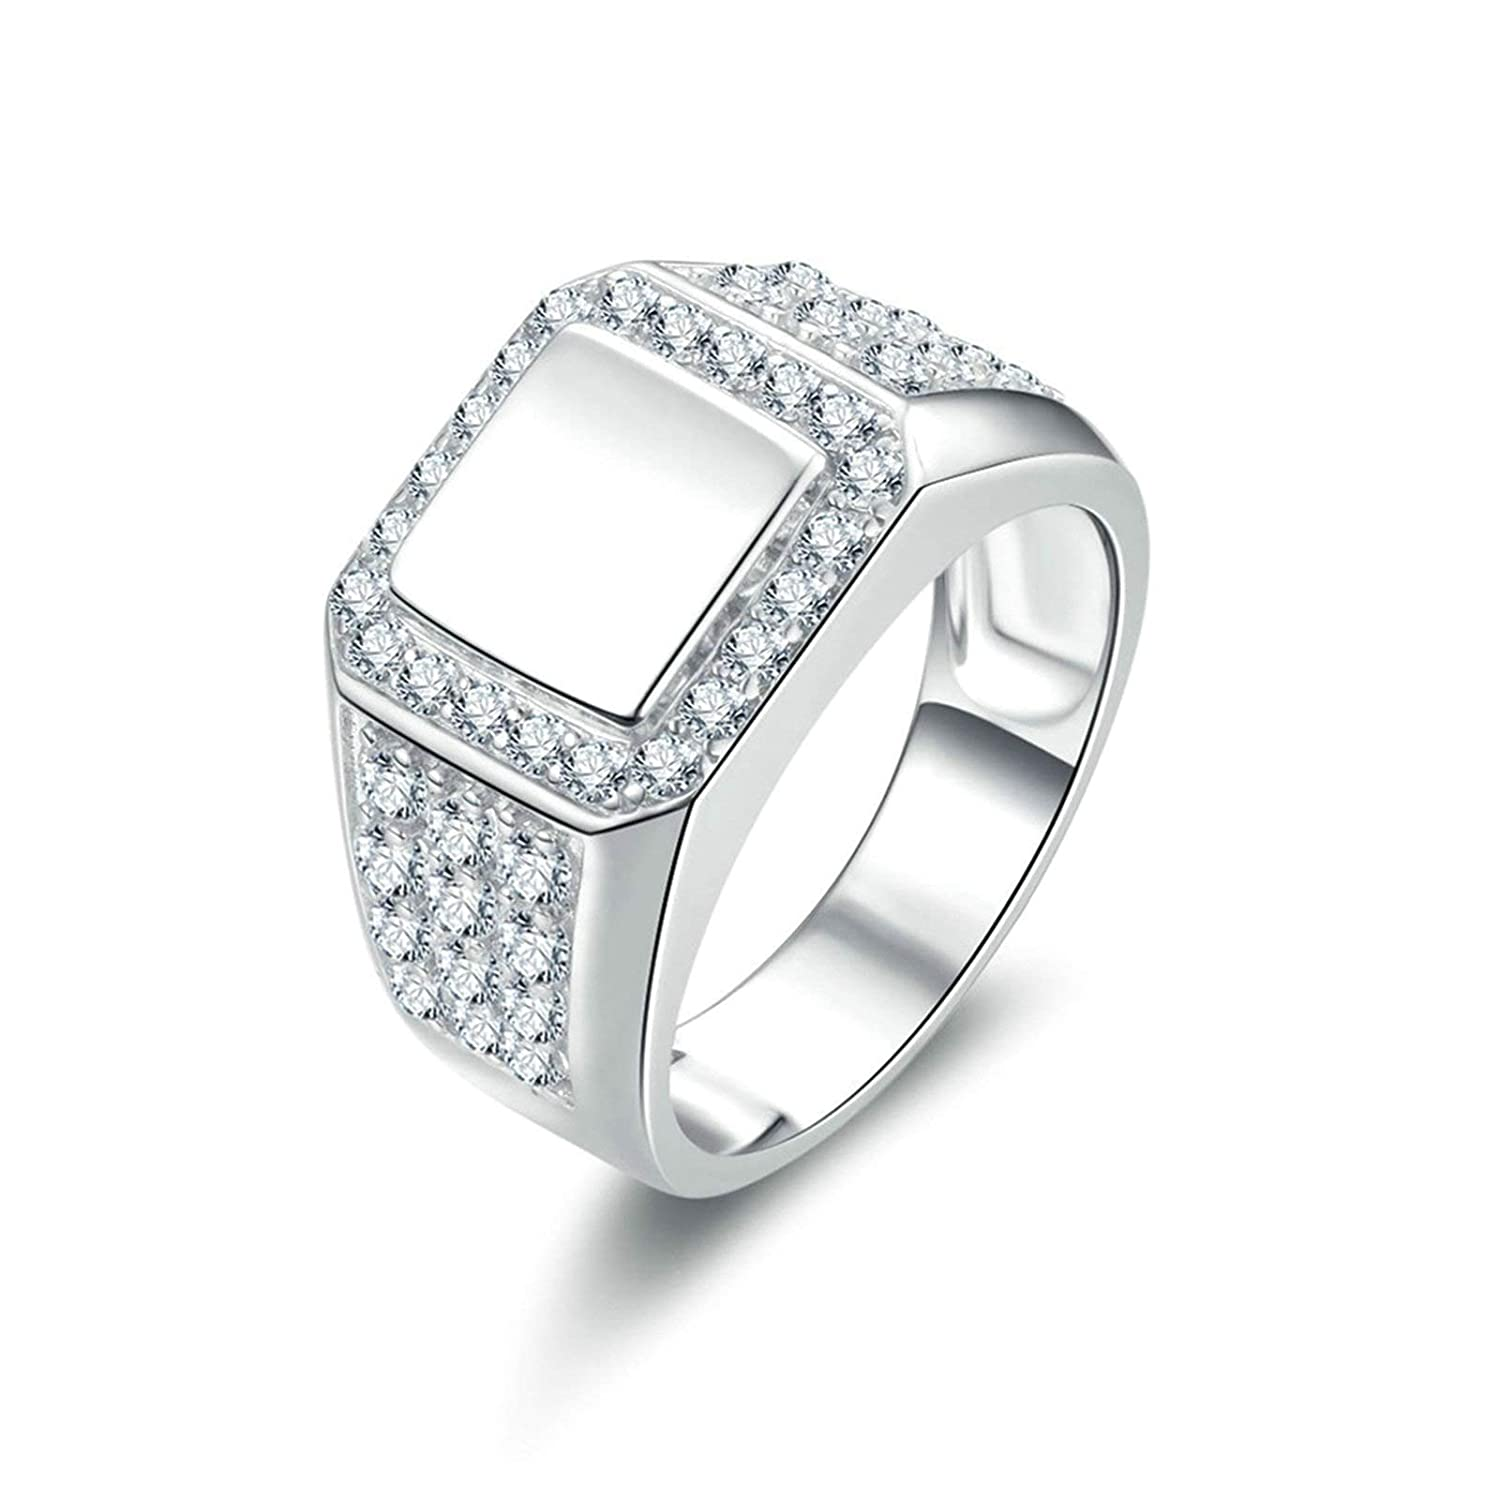 e4189dd5240d7 Amazon.com: Aooaz Jewelry Wedding Ring Silver Material Finger Ring ...